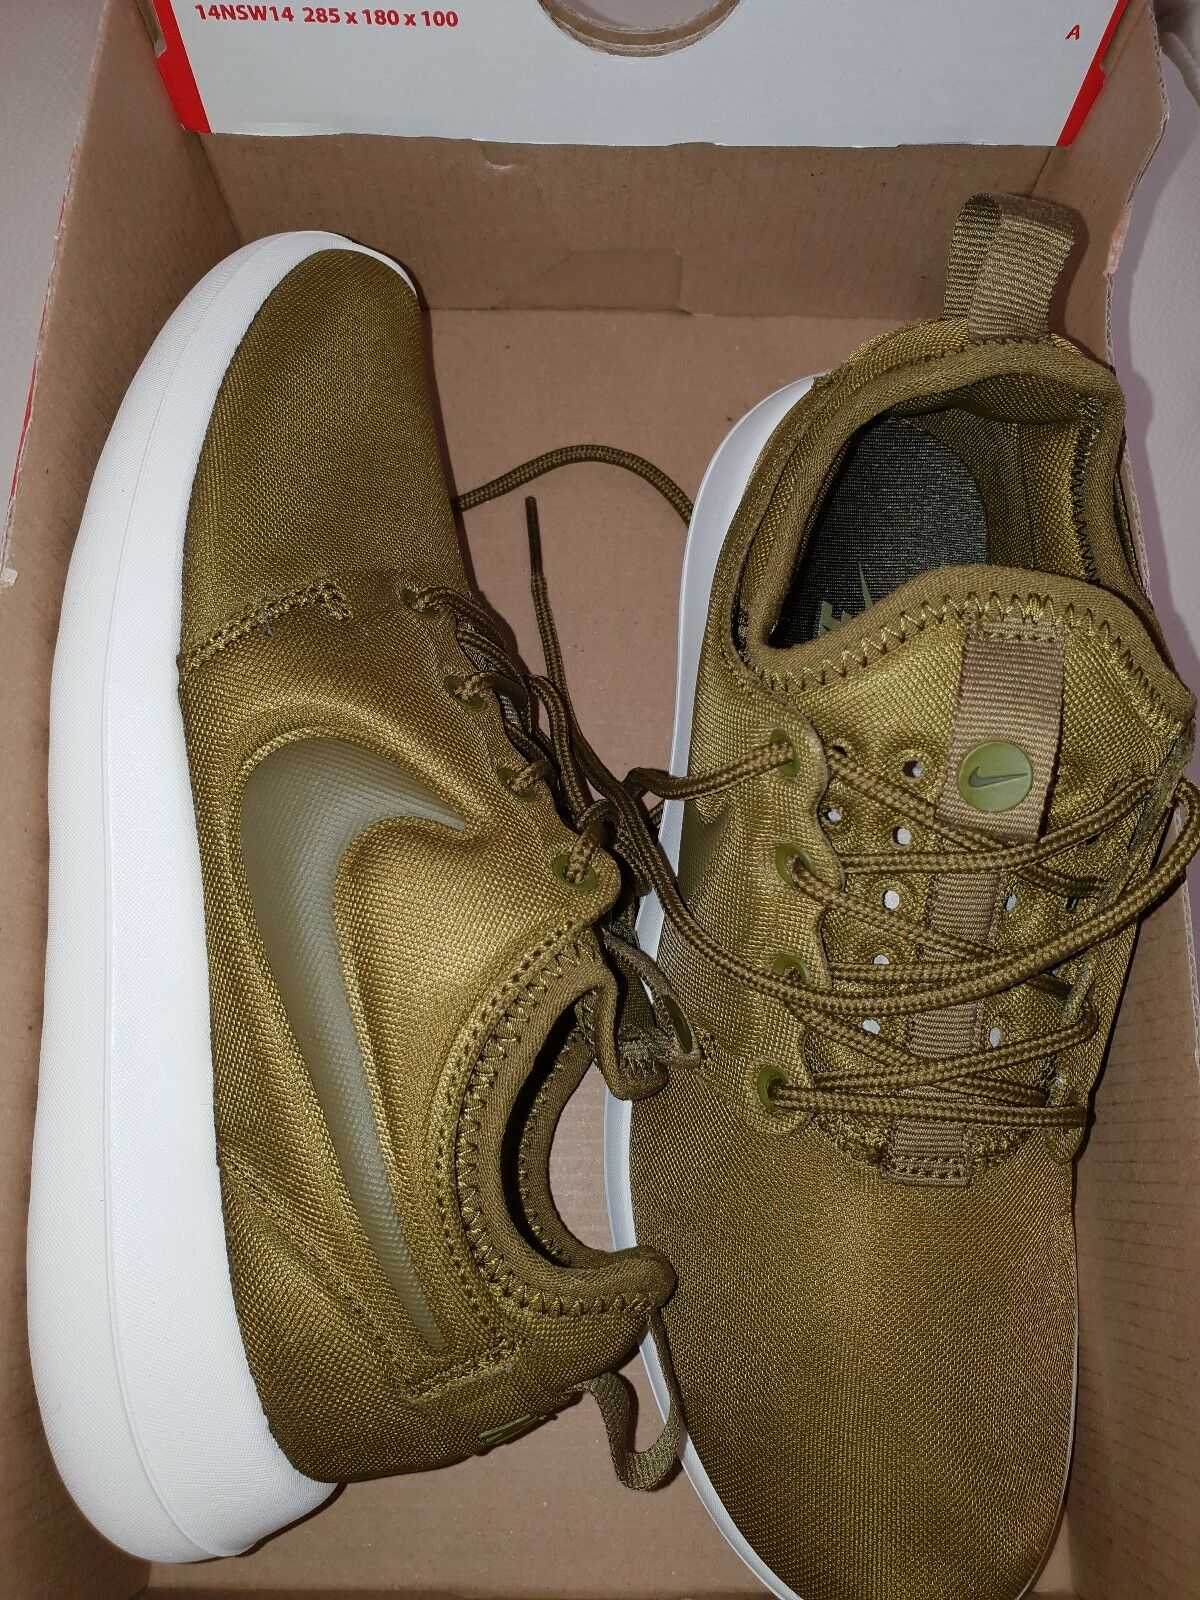 21ed25036eb6 NIKE ROSHE TWO Running Trainers shoes Gym Casual - 2.5 Olive green UK Womens  opotqr5259-Women s Trainers